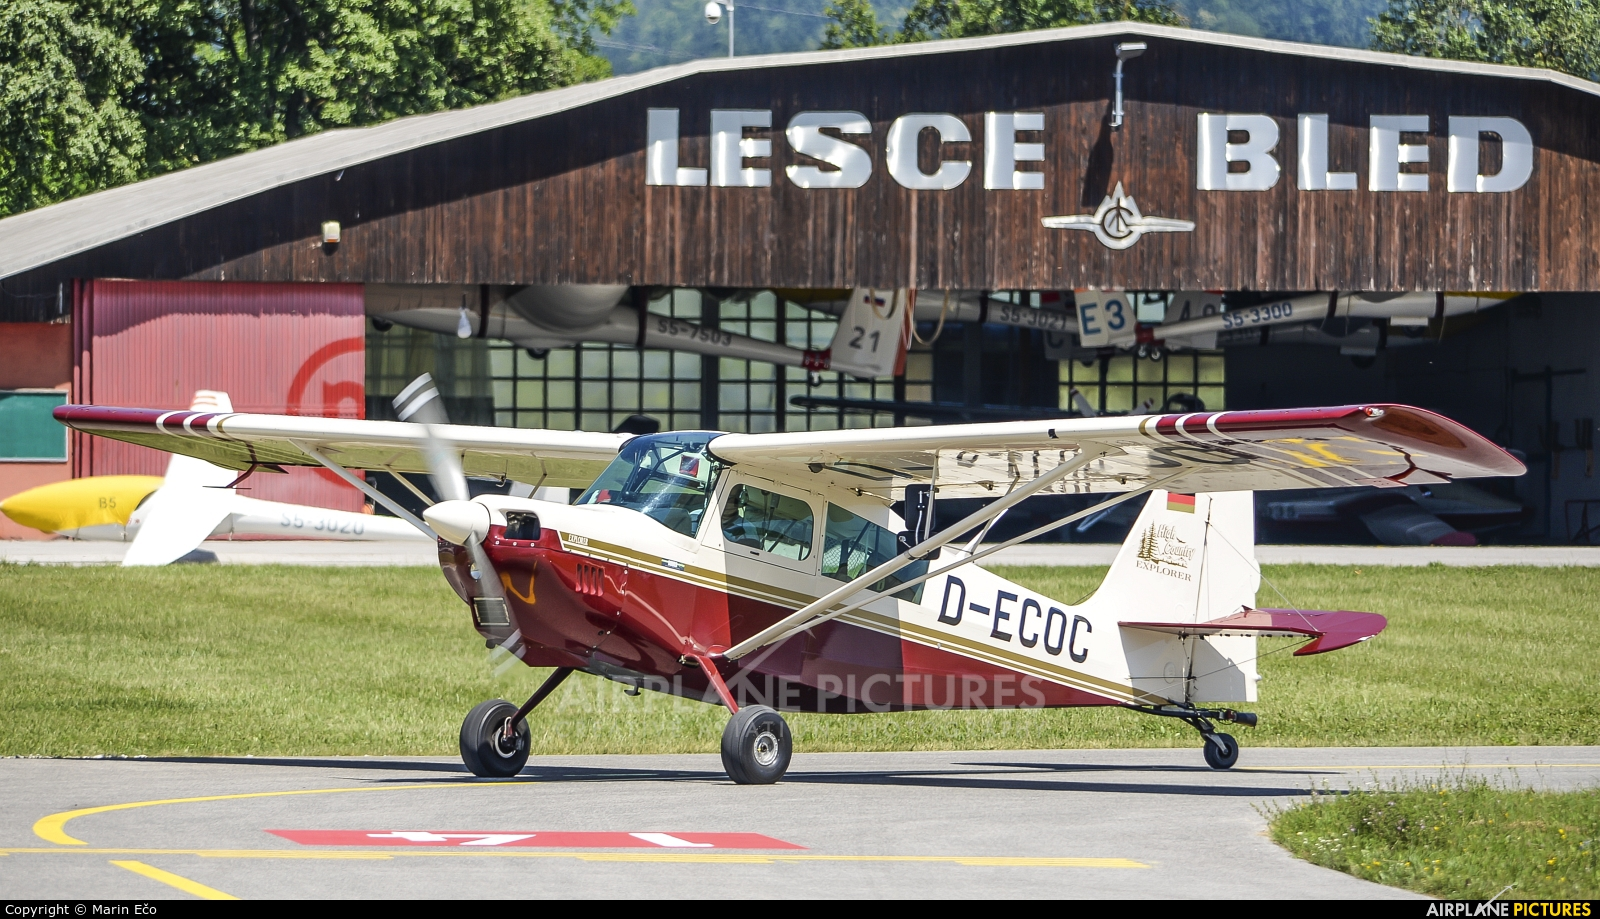 Private D-ECOC aircraft at Lesce-Bled